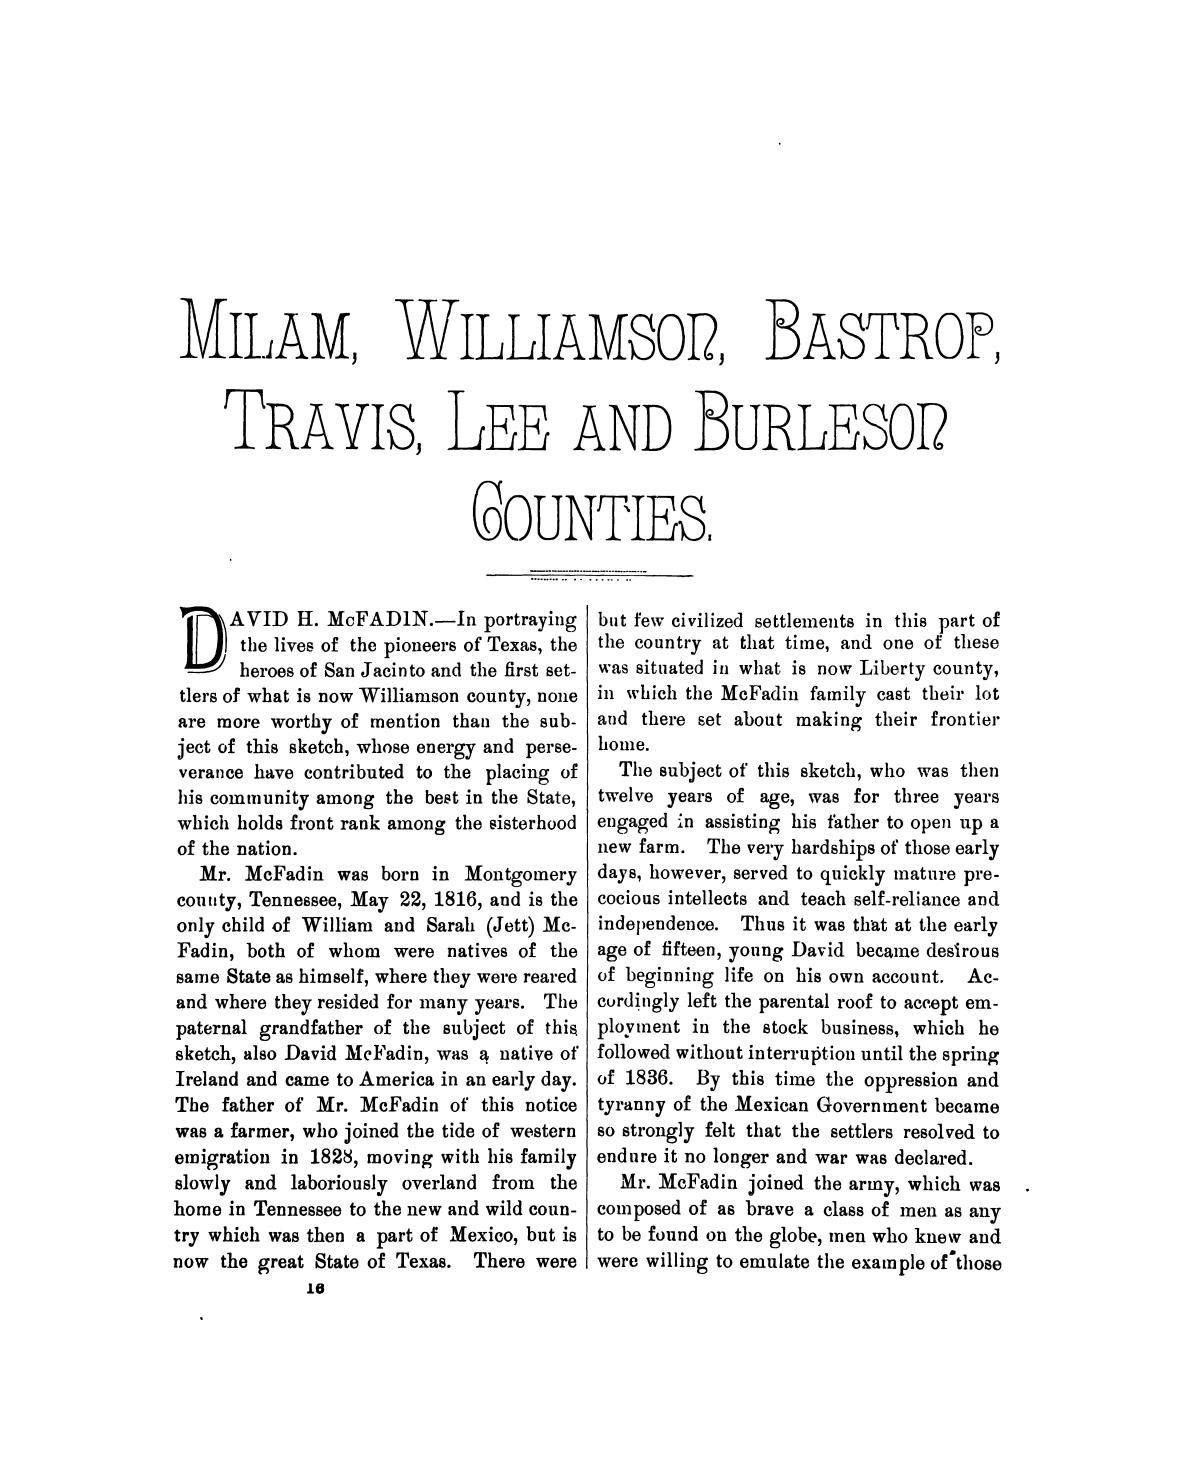 History of Texas, together with a biographical history of Milam, Williamson, Bastrop, Travis, Lee and Burleson counties : containing a concise history of the state, with portraits and biographies of prominent citizens of the above named counties, and personal histories of many of the early settlers and leading families                                                                                                      247